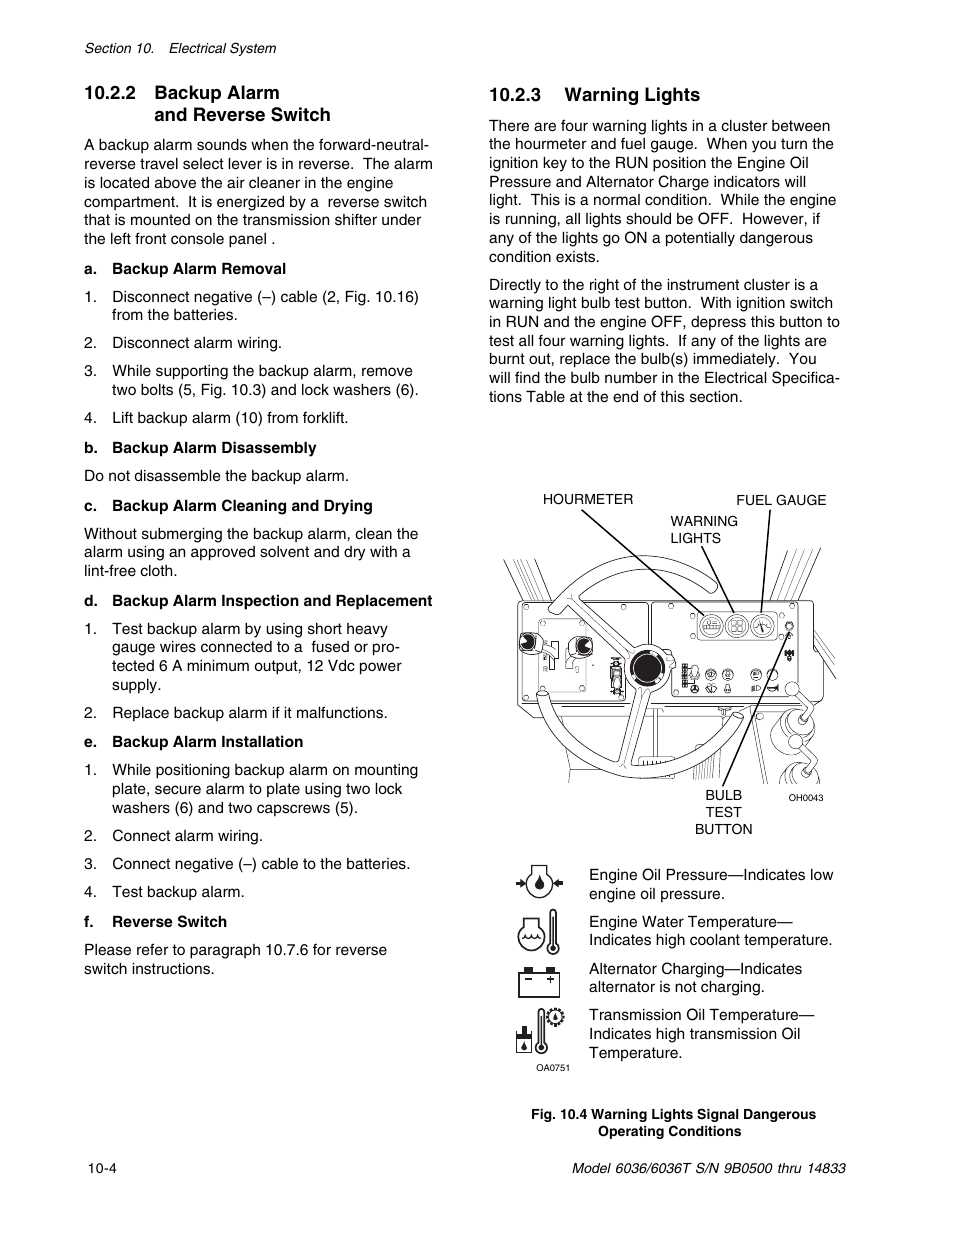 2 backup alarm and reverse switch, 3 warning lights | SkyTrak 6036 Service  Manual User Manual | Page 266 / 342